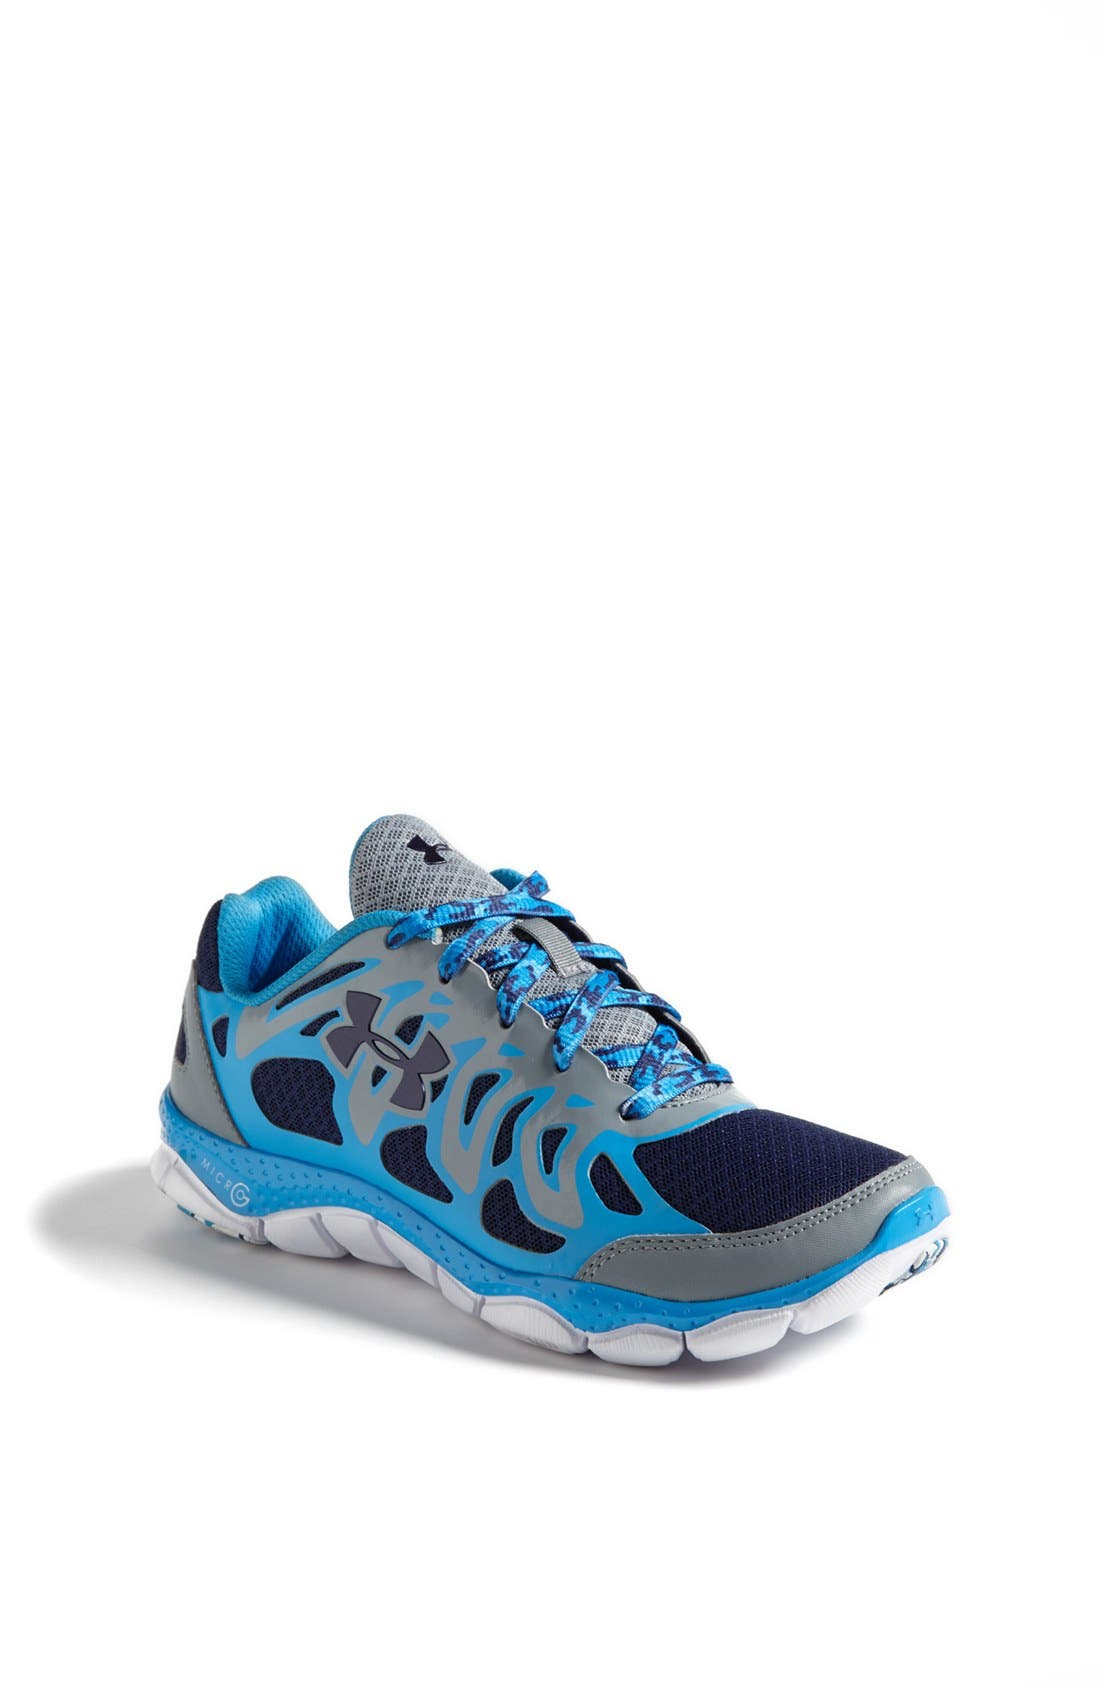 Main Image - Under Armour 'Micro G™ Engage' Athletic Shoe (Big Kid)